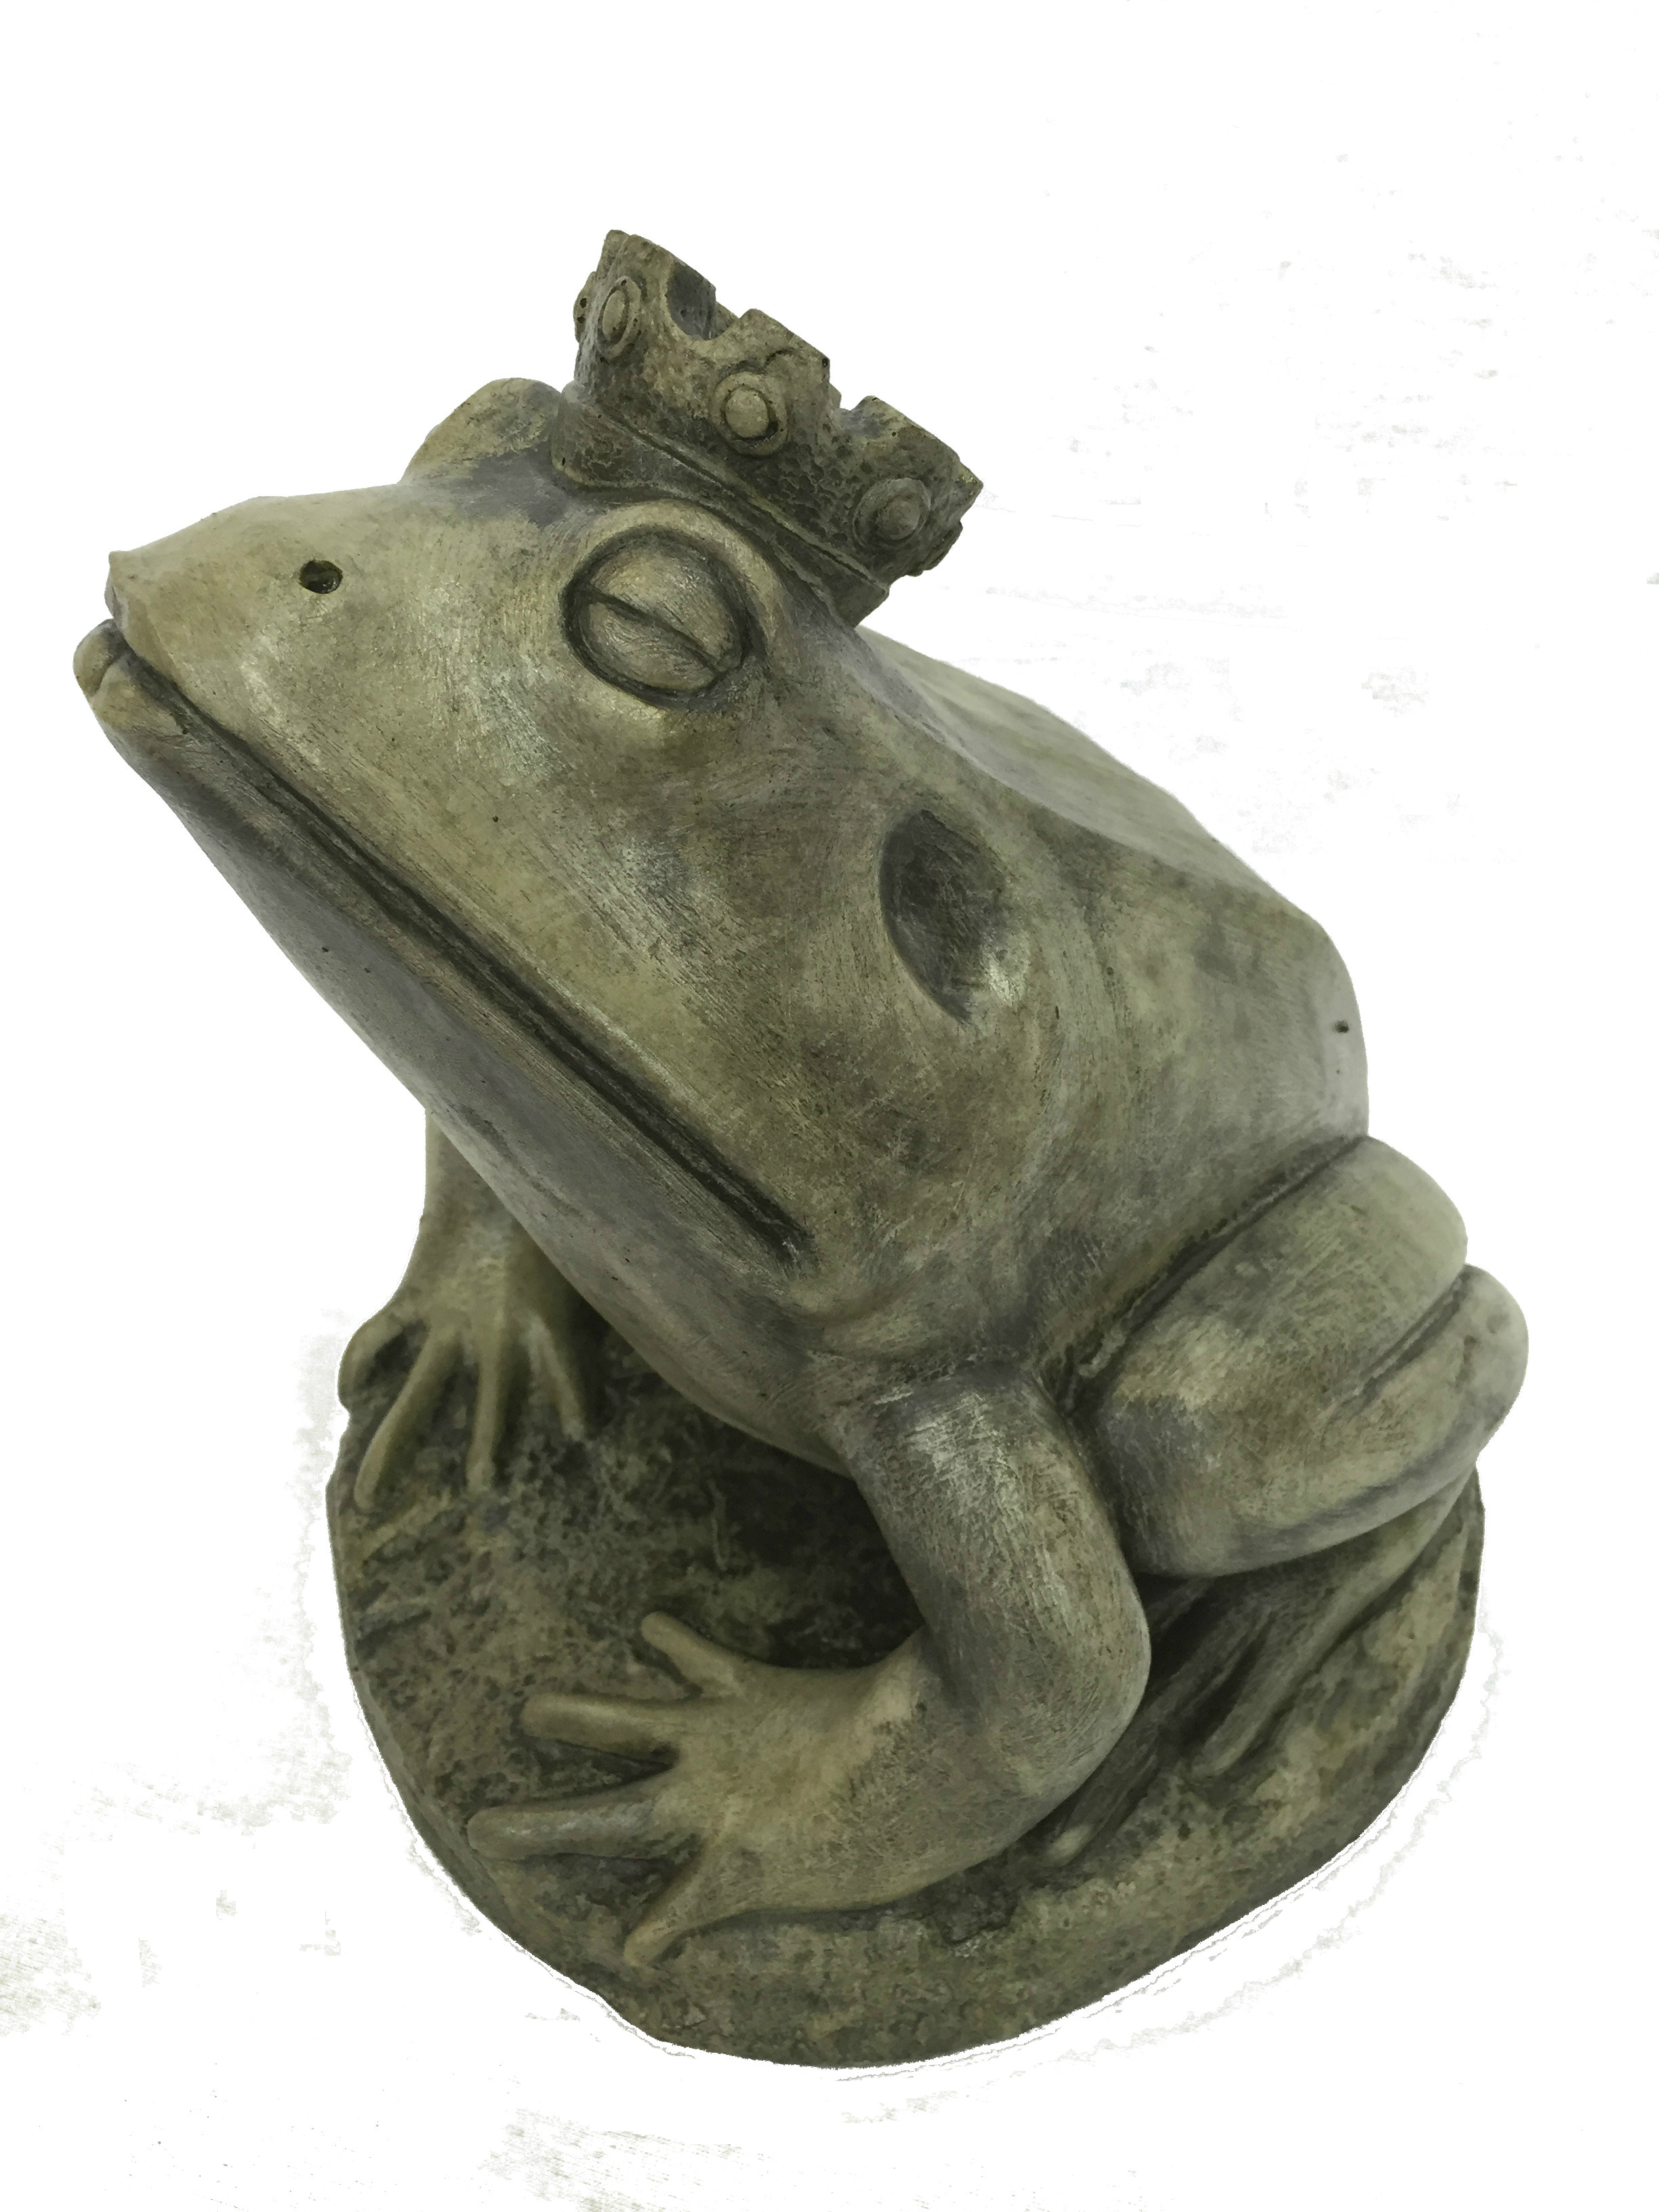 Frog Prince concrete animal sculpture for garden pond